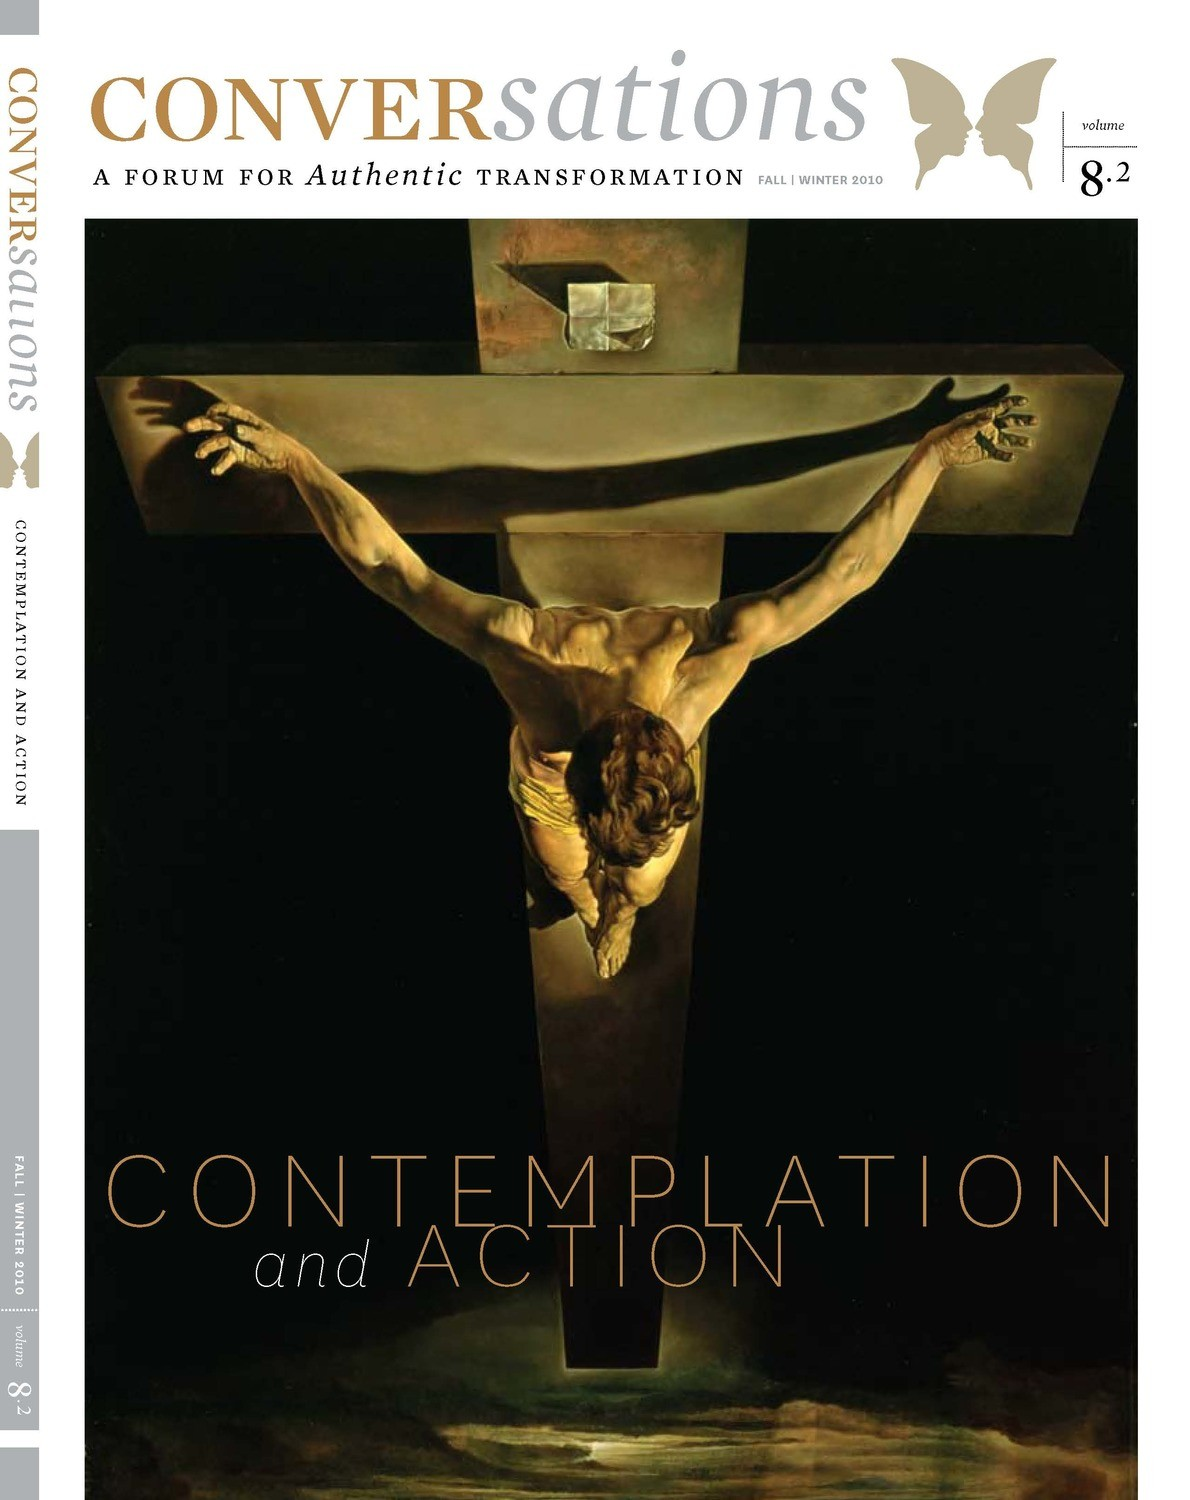 Conversations Journal 8.2 Contemplation and Action (Digital Download - PDF)